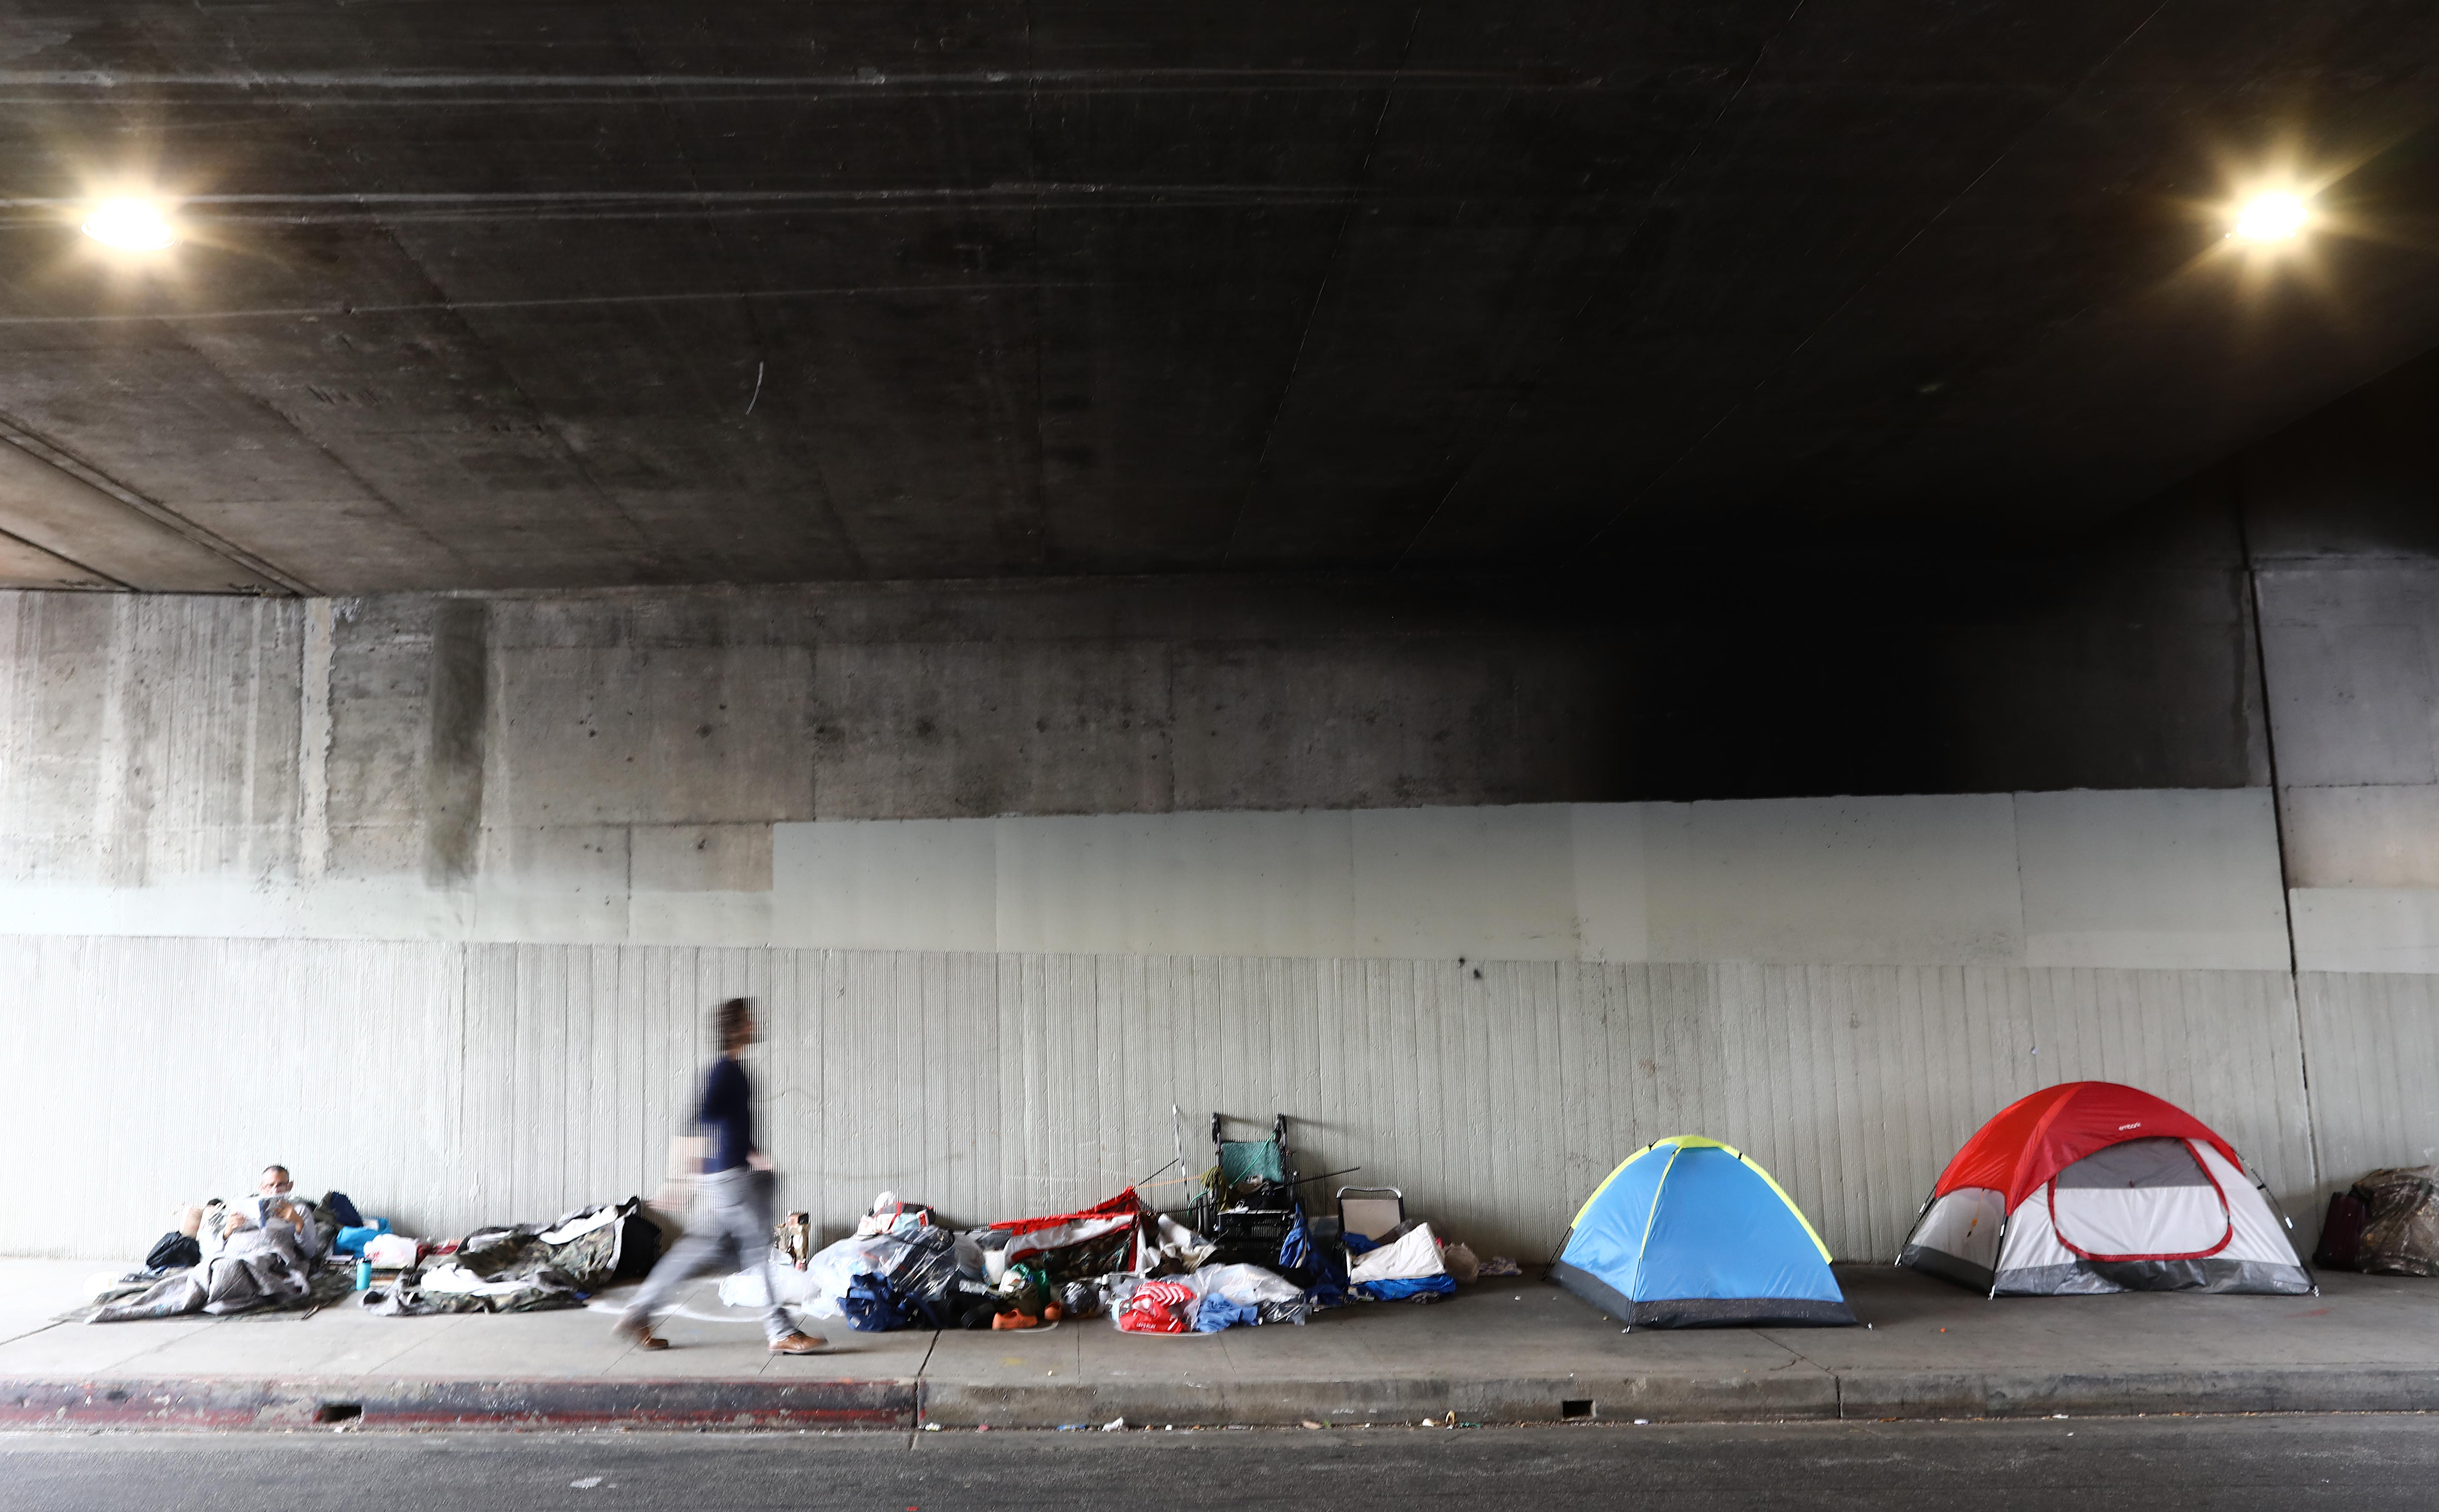 New report underscores link between 'shocking' number of evictions, homelessness